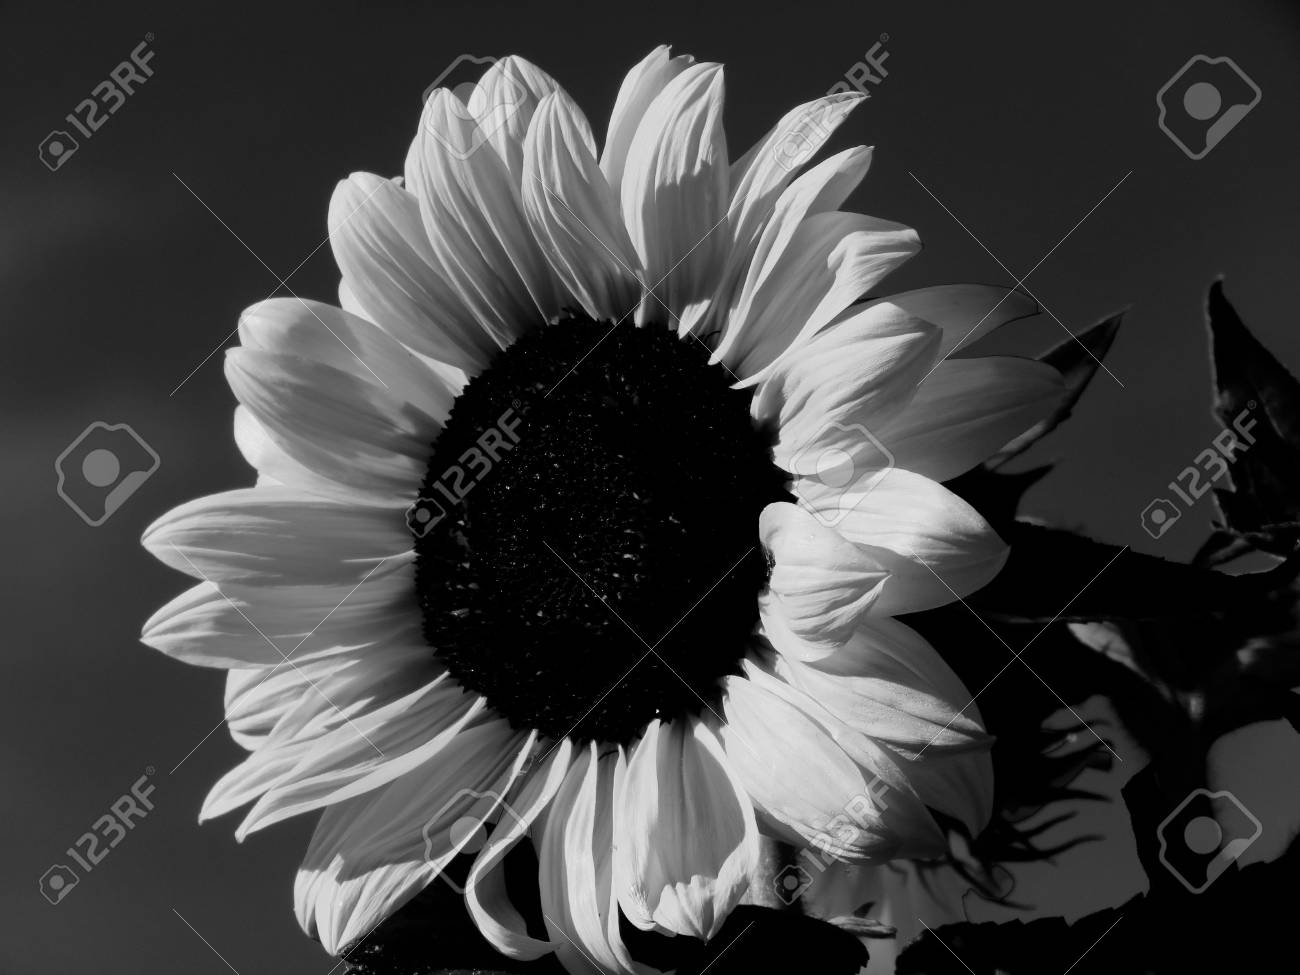 Close up of a sunflower in black and white